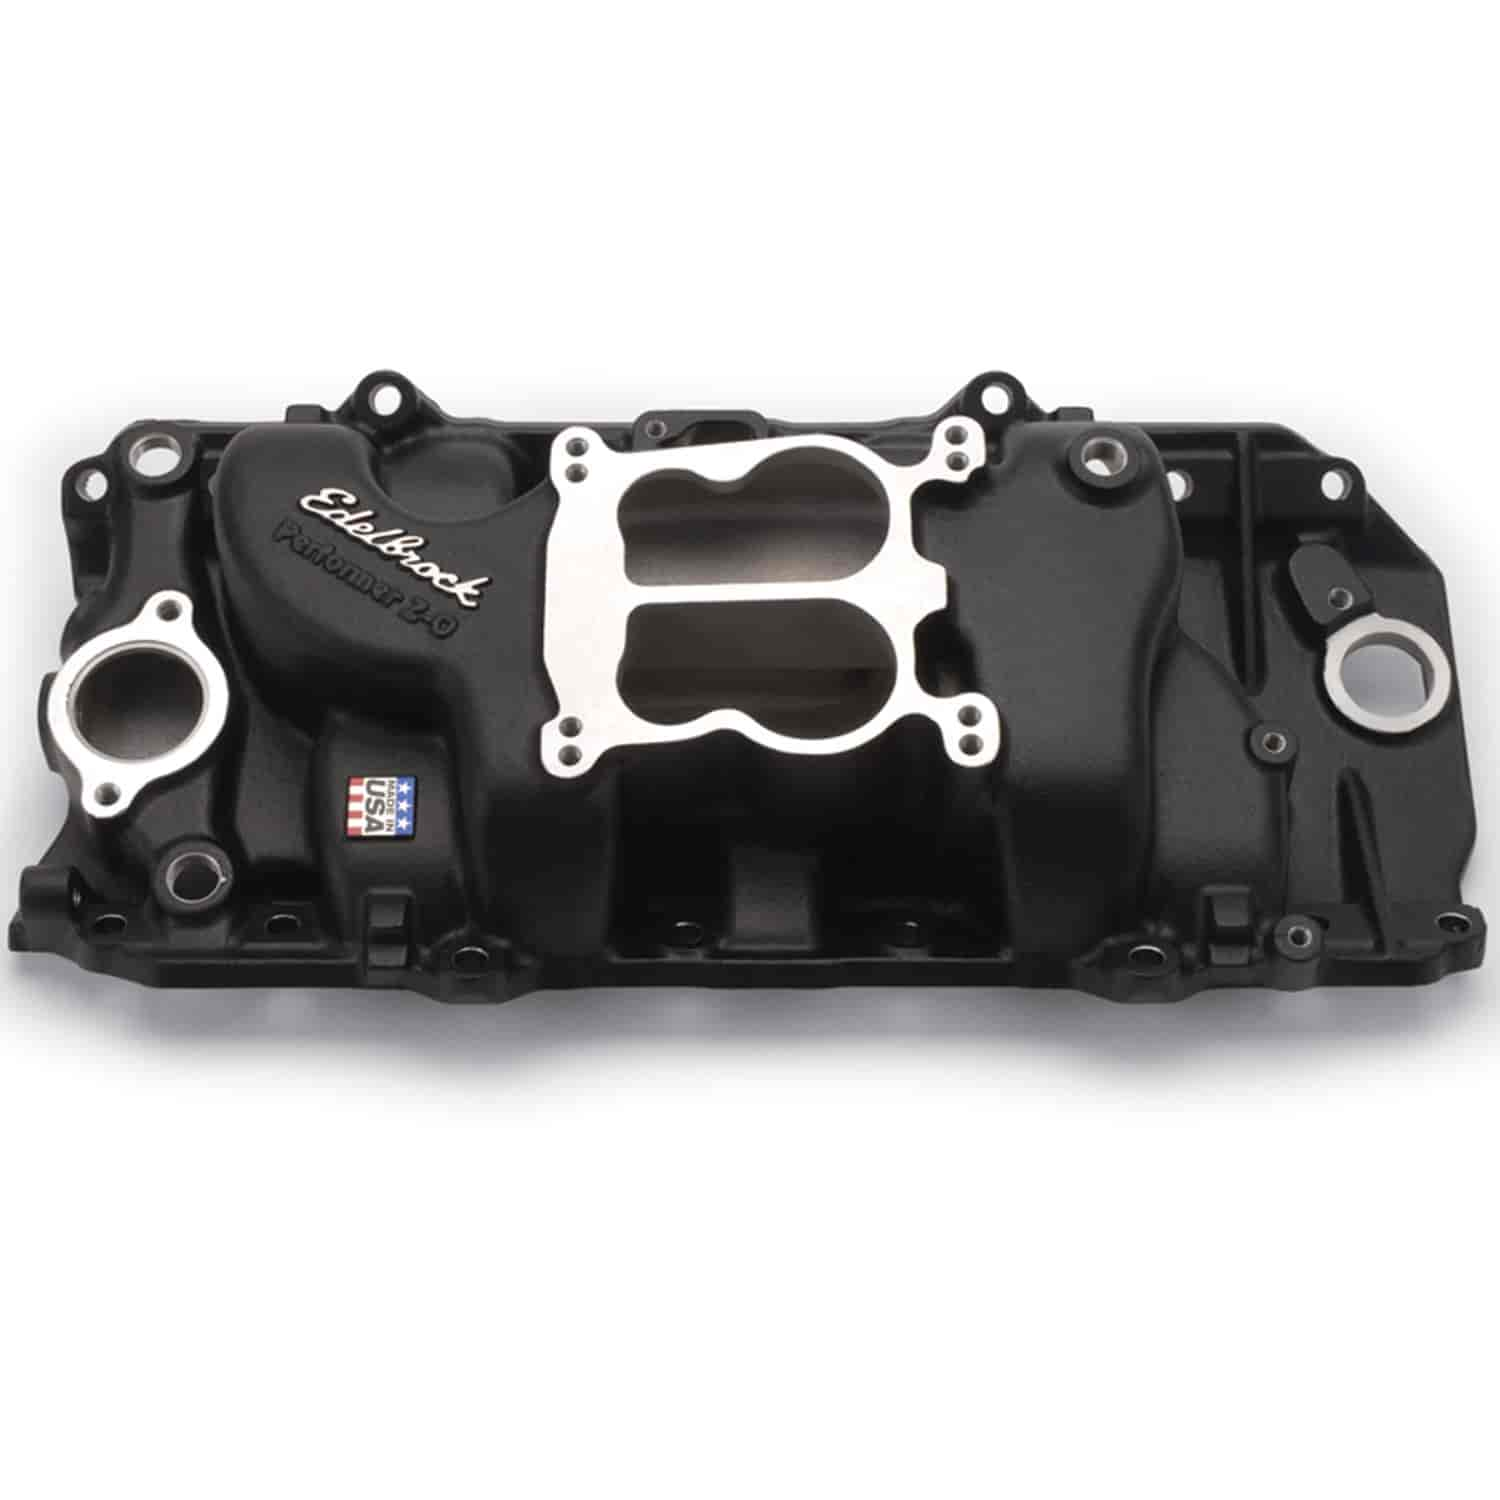 Edelbrock 21613 - Edelbrock Performer Intake Manifolds for Chevy